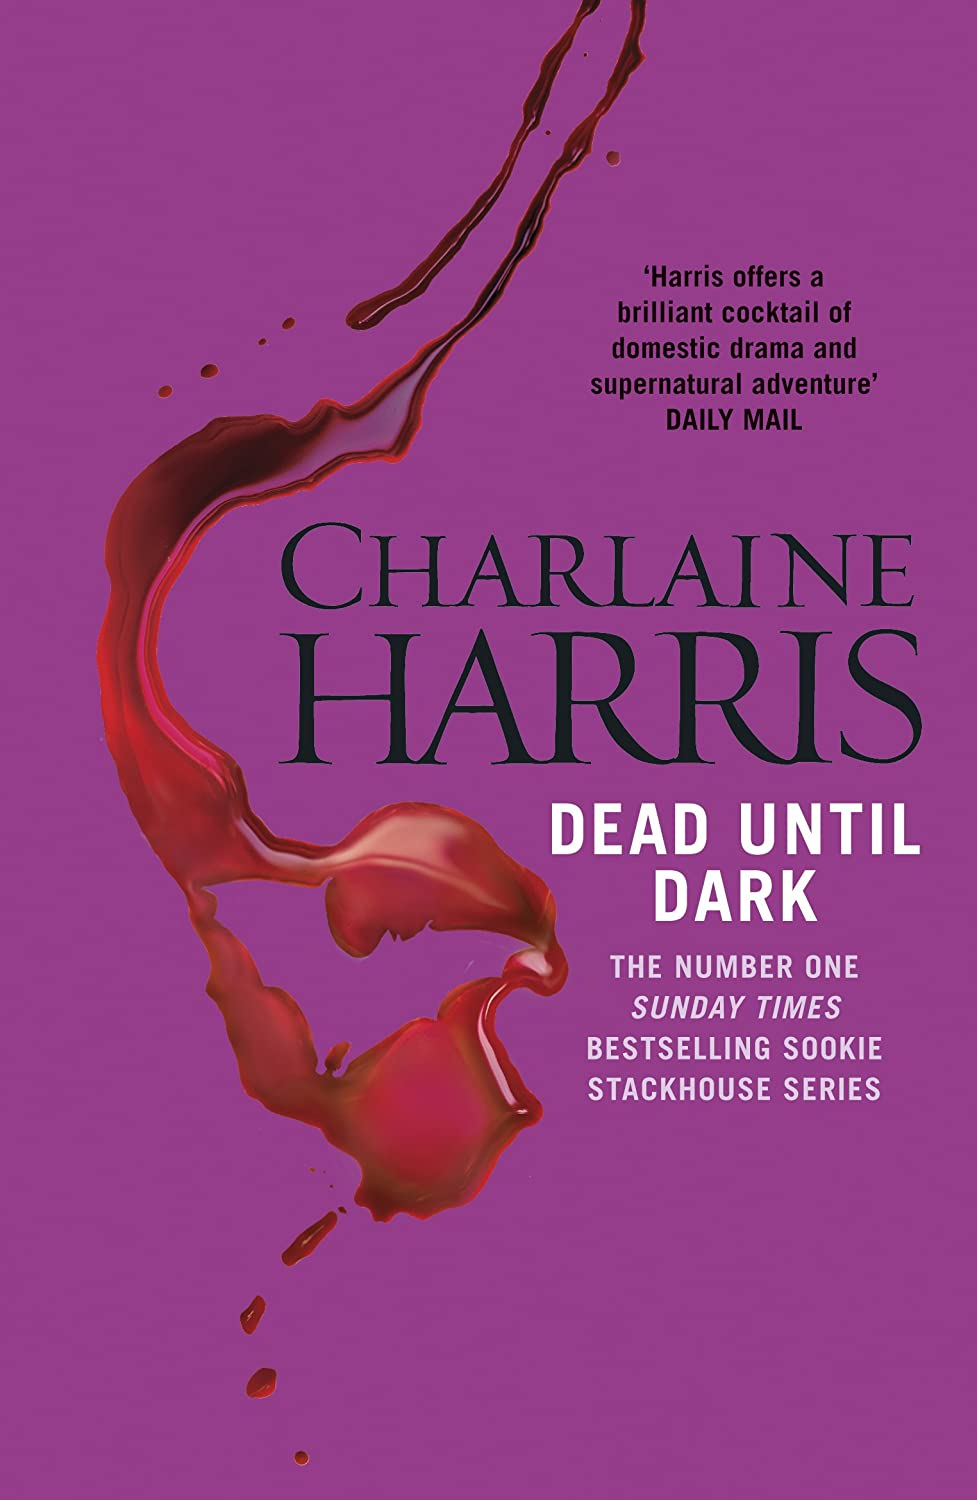 True Blood, Charlaine Harris, Sookie Stackhouse, fantasy, vampire